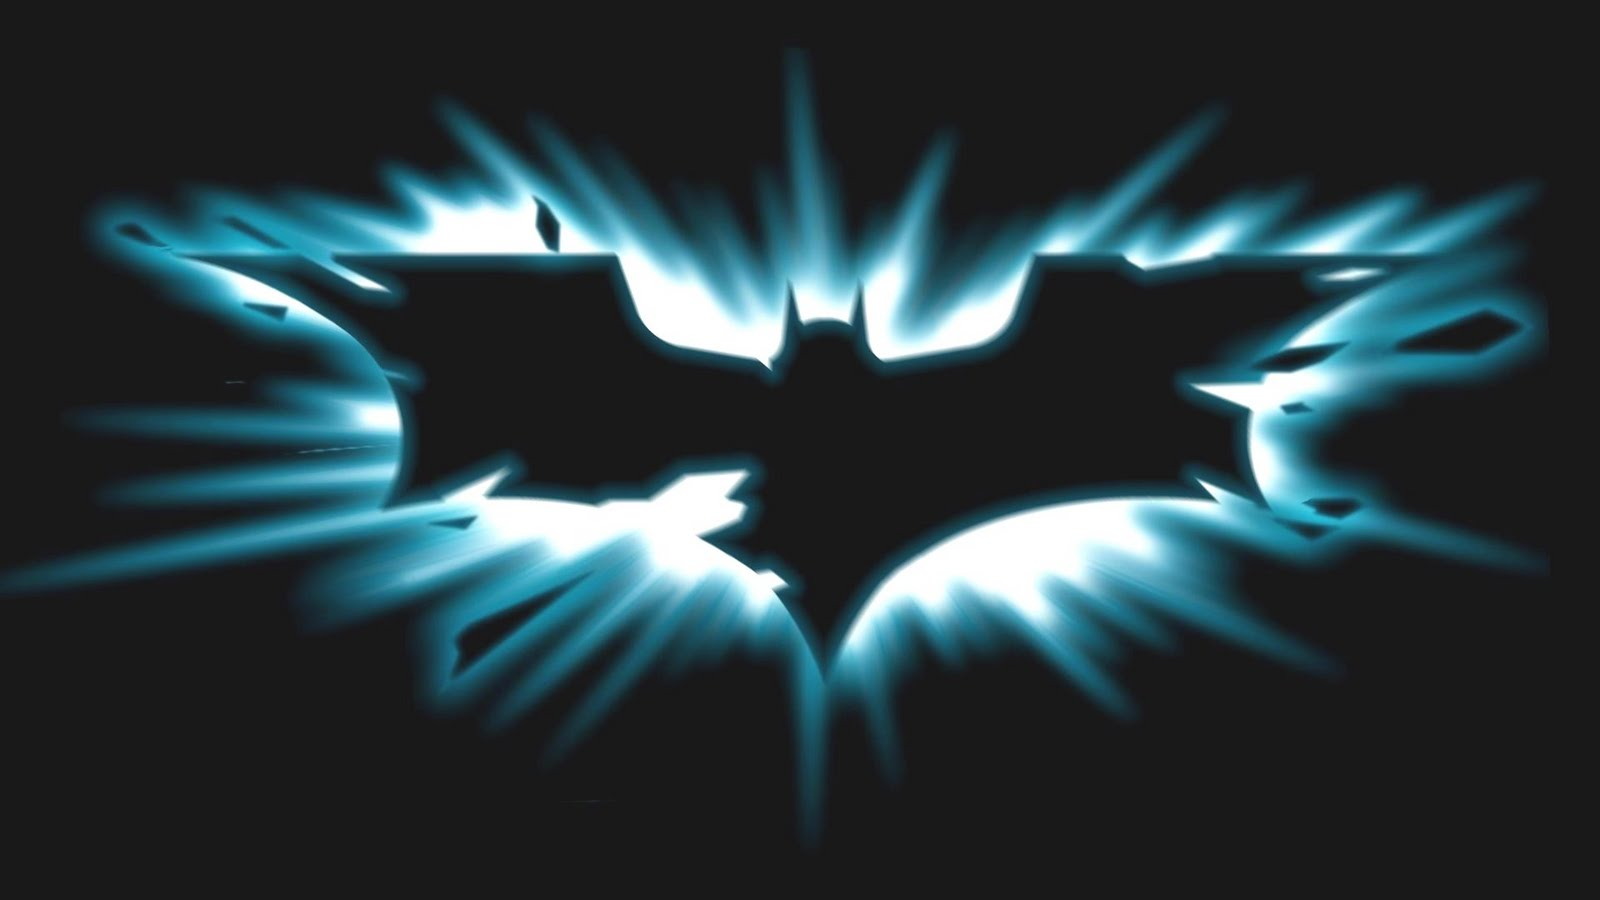 Batman logo logos images Batman symbol